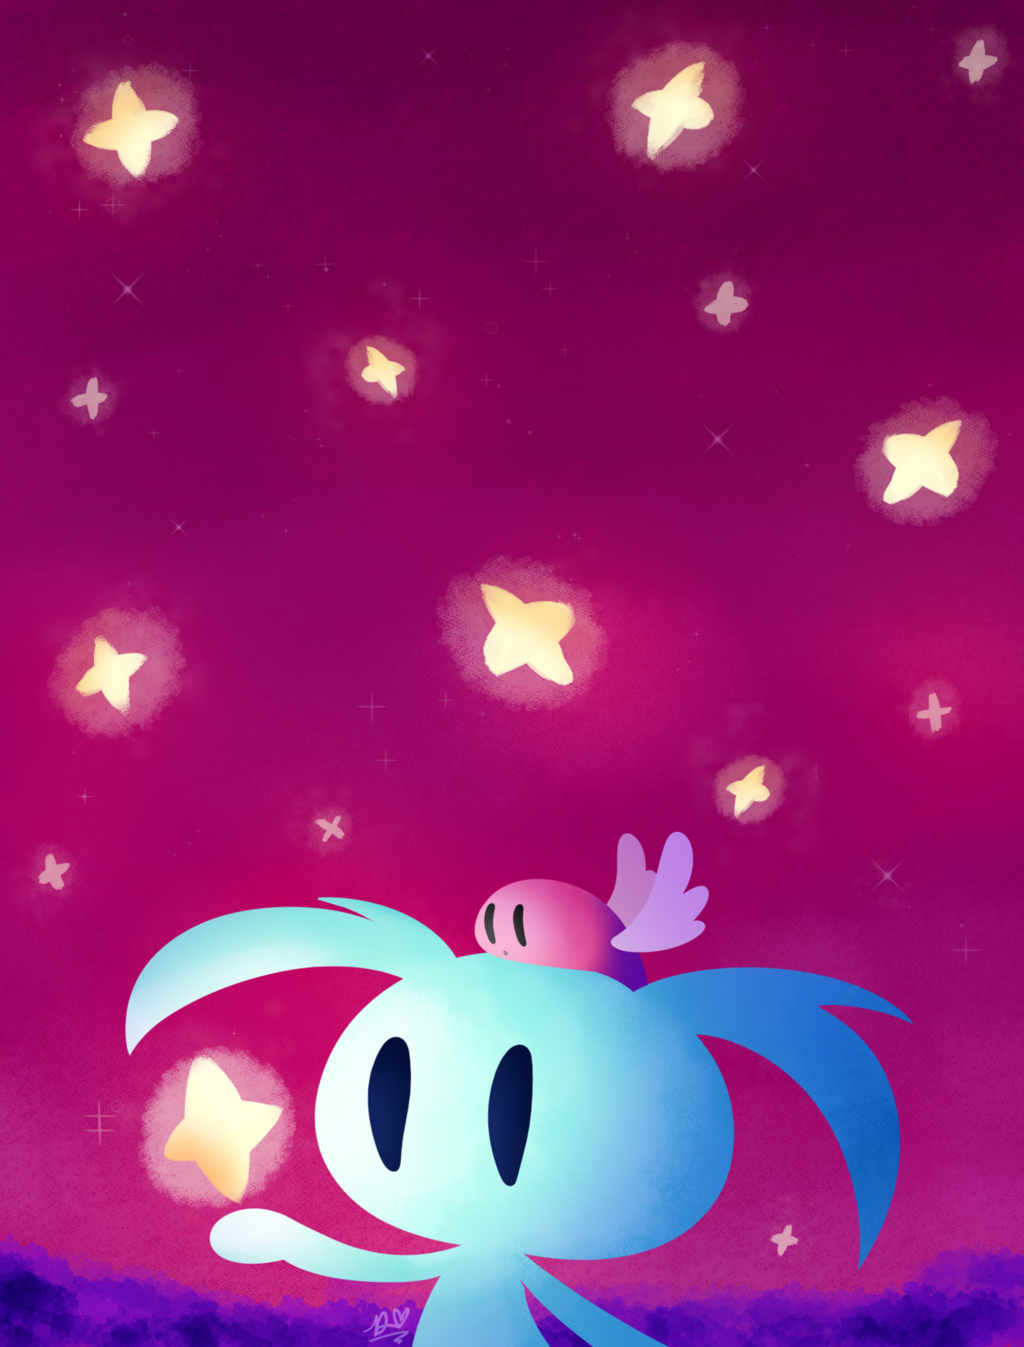 Most recent image: Star Collecting